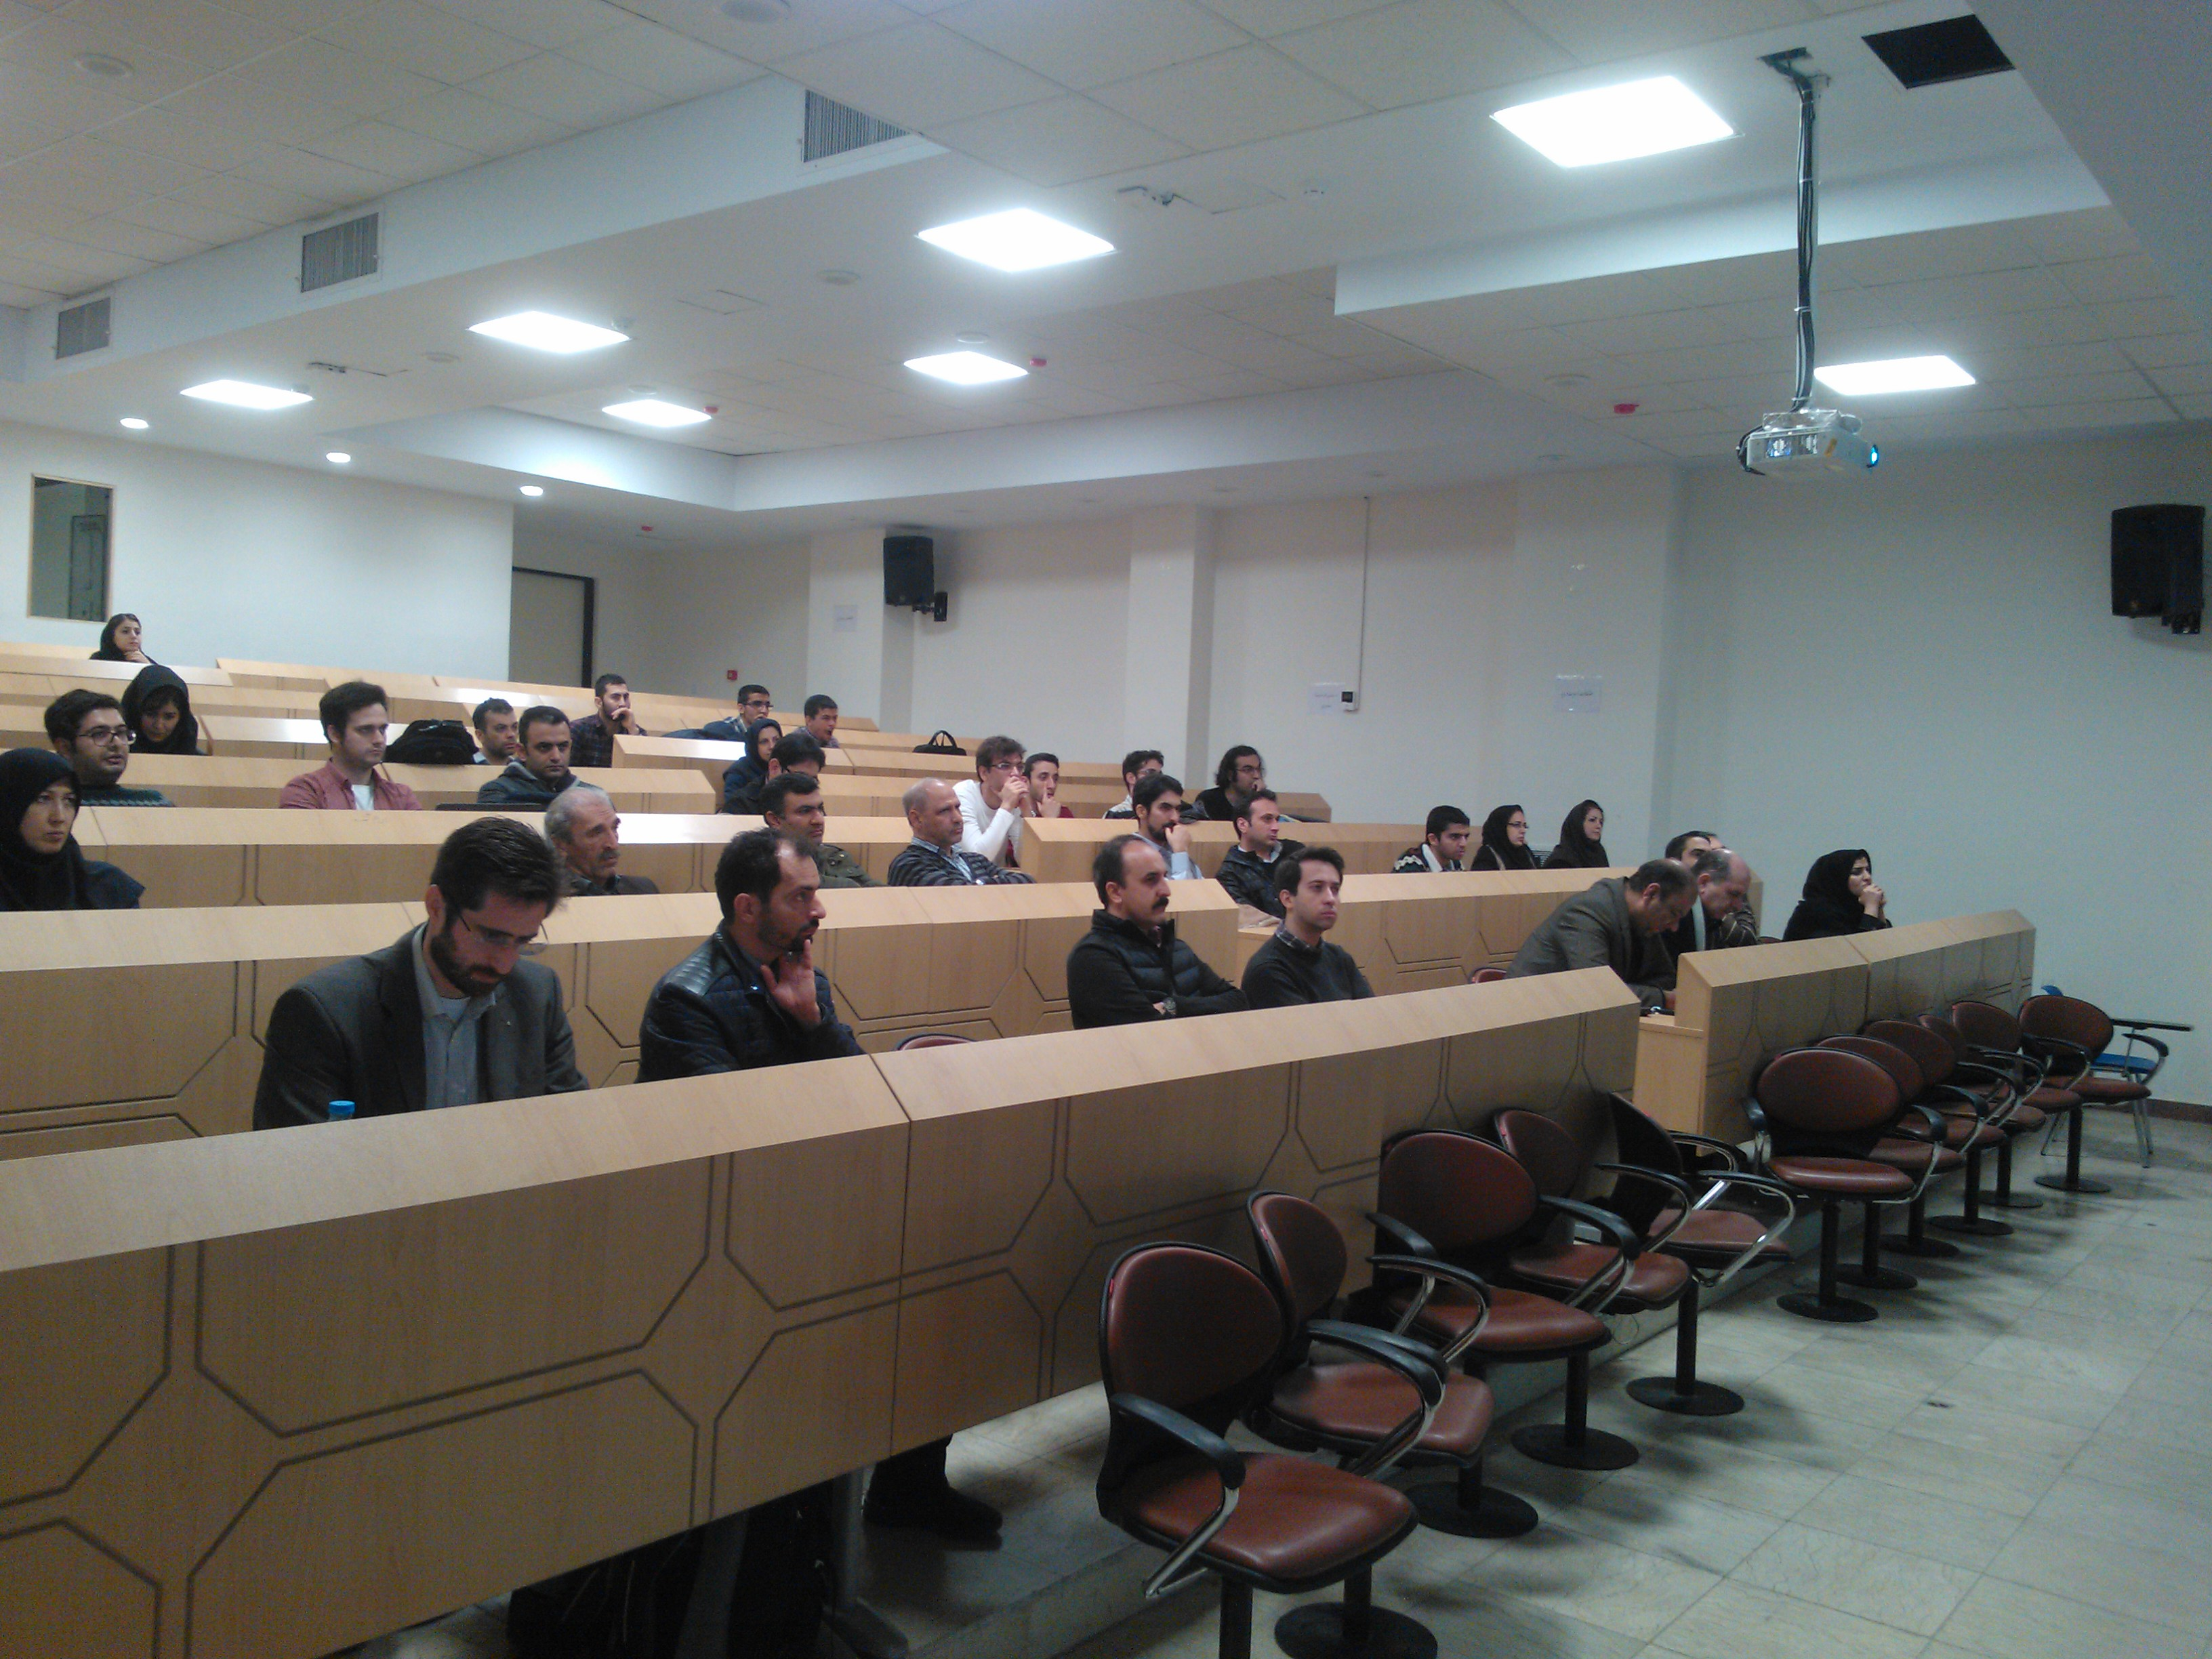 thesis seminar Thesis seminar presentation certified professional essay writers & resume experts creating amazing resumes that help clients across the globe win more interviews.